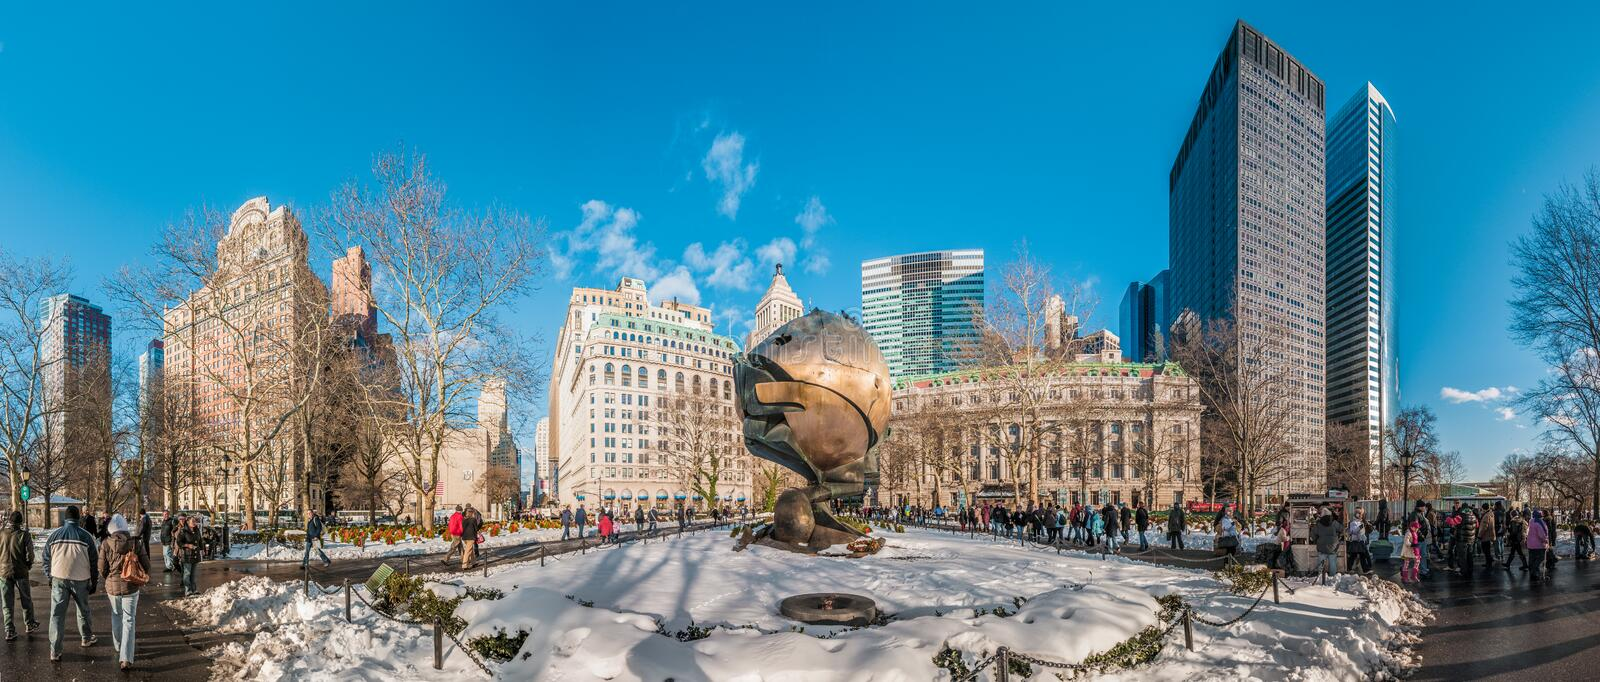 Battery Park in New York, United States of America. NEW YORK, UNITED STATES - DECEMBER 21, 2009: The Sphere, which once stood at the center of the plaza of the stock photography